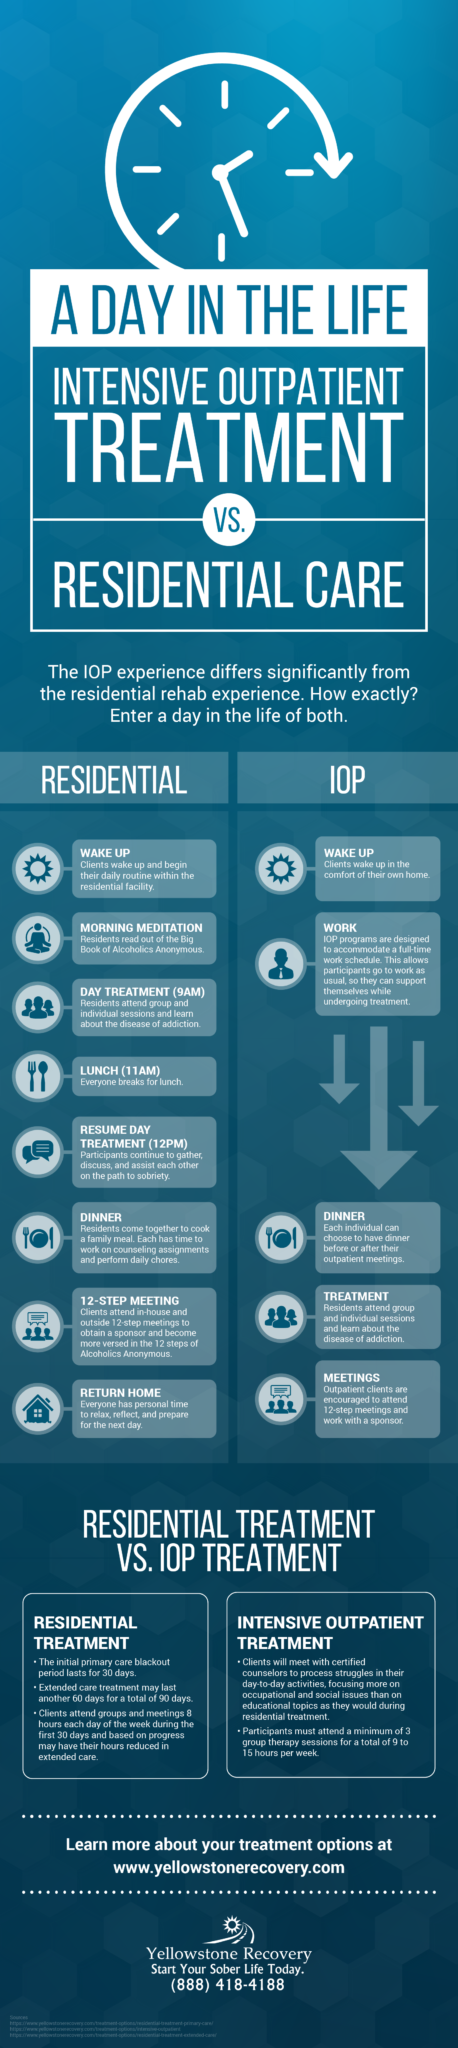 infographic: iop vs residential care